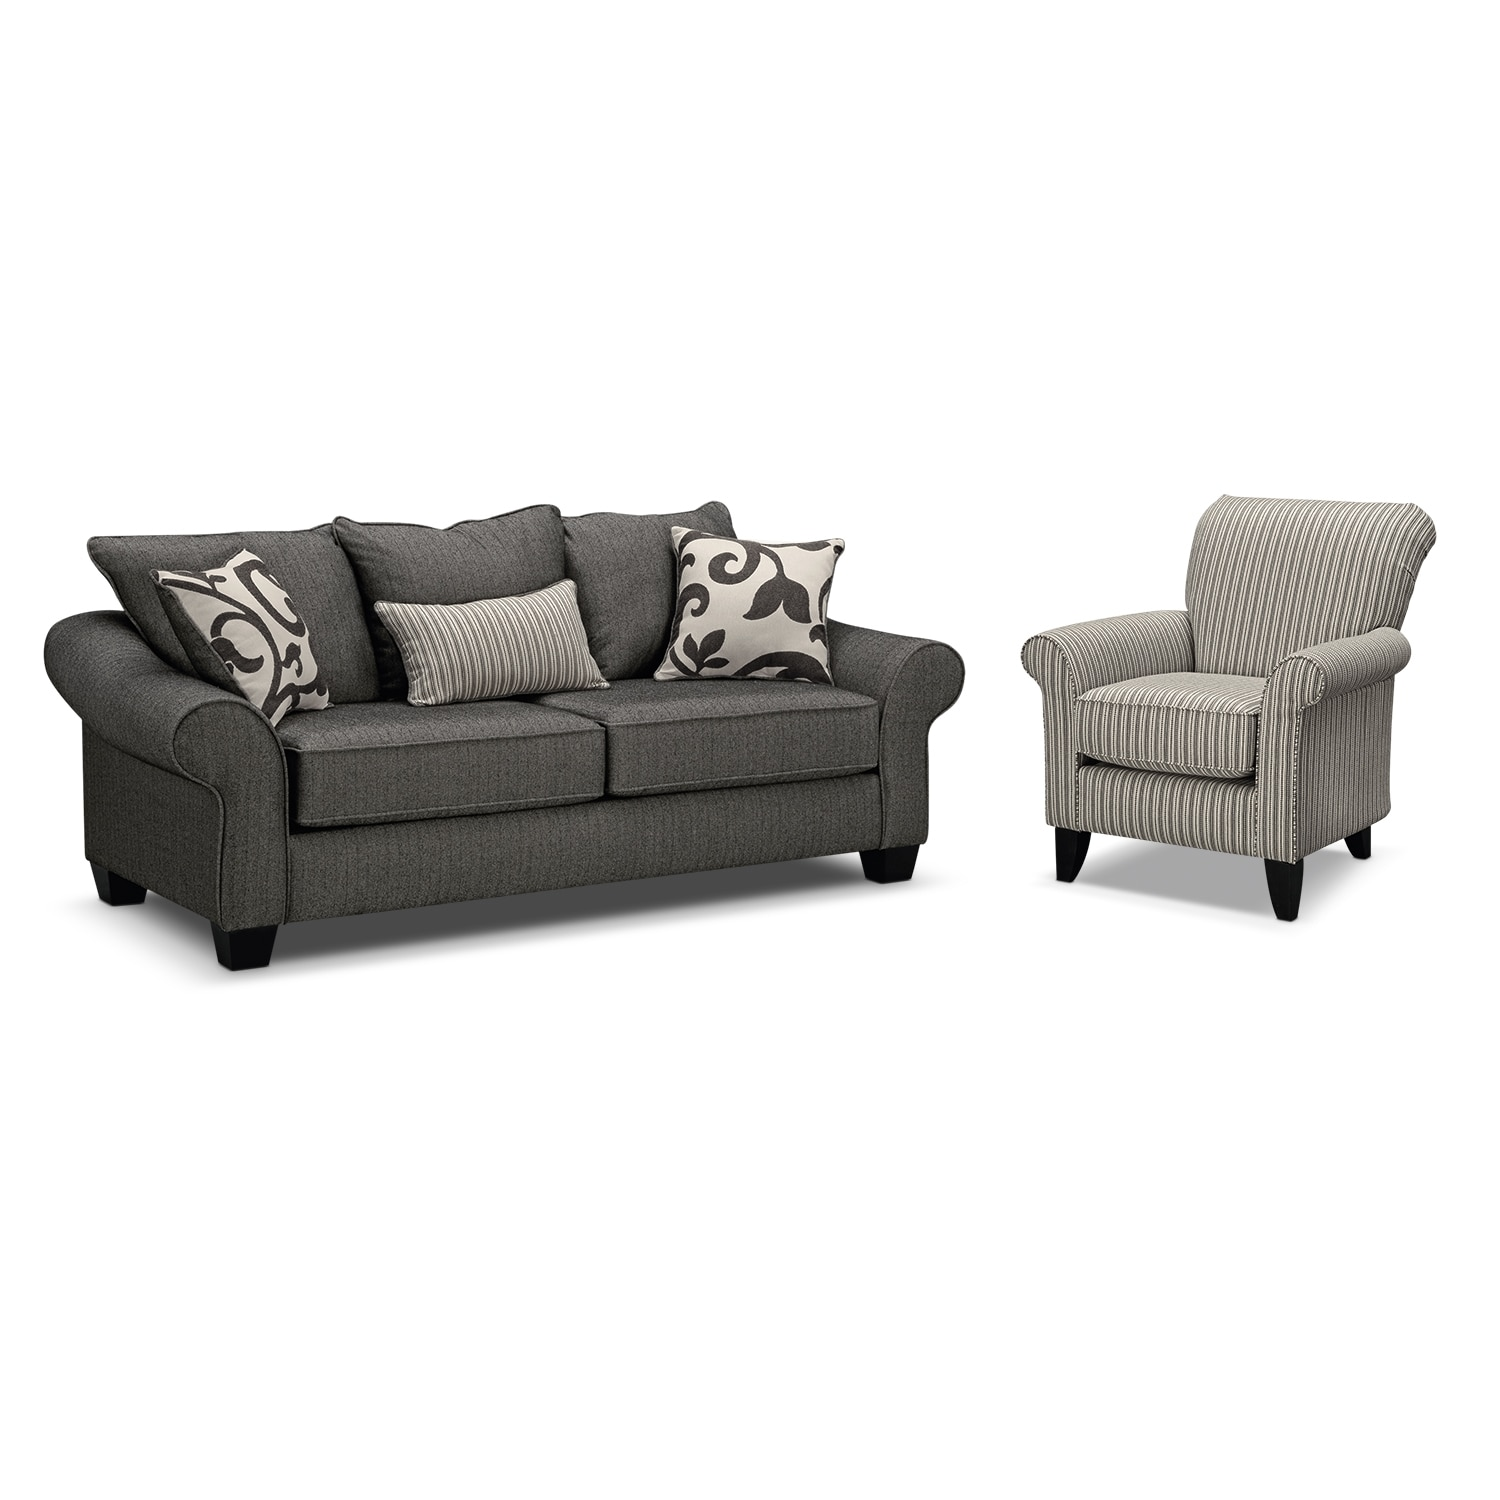 Living Room Furniture - Colette Gray 2 Pc. Sleeper Living Room with Accent Chair and Memory Foam Mattress